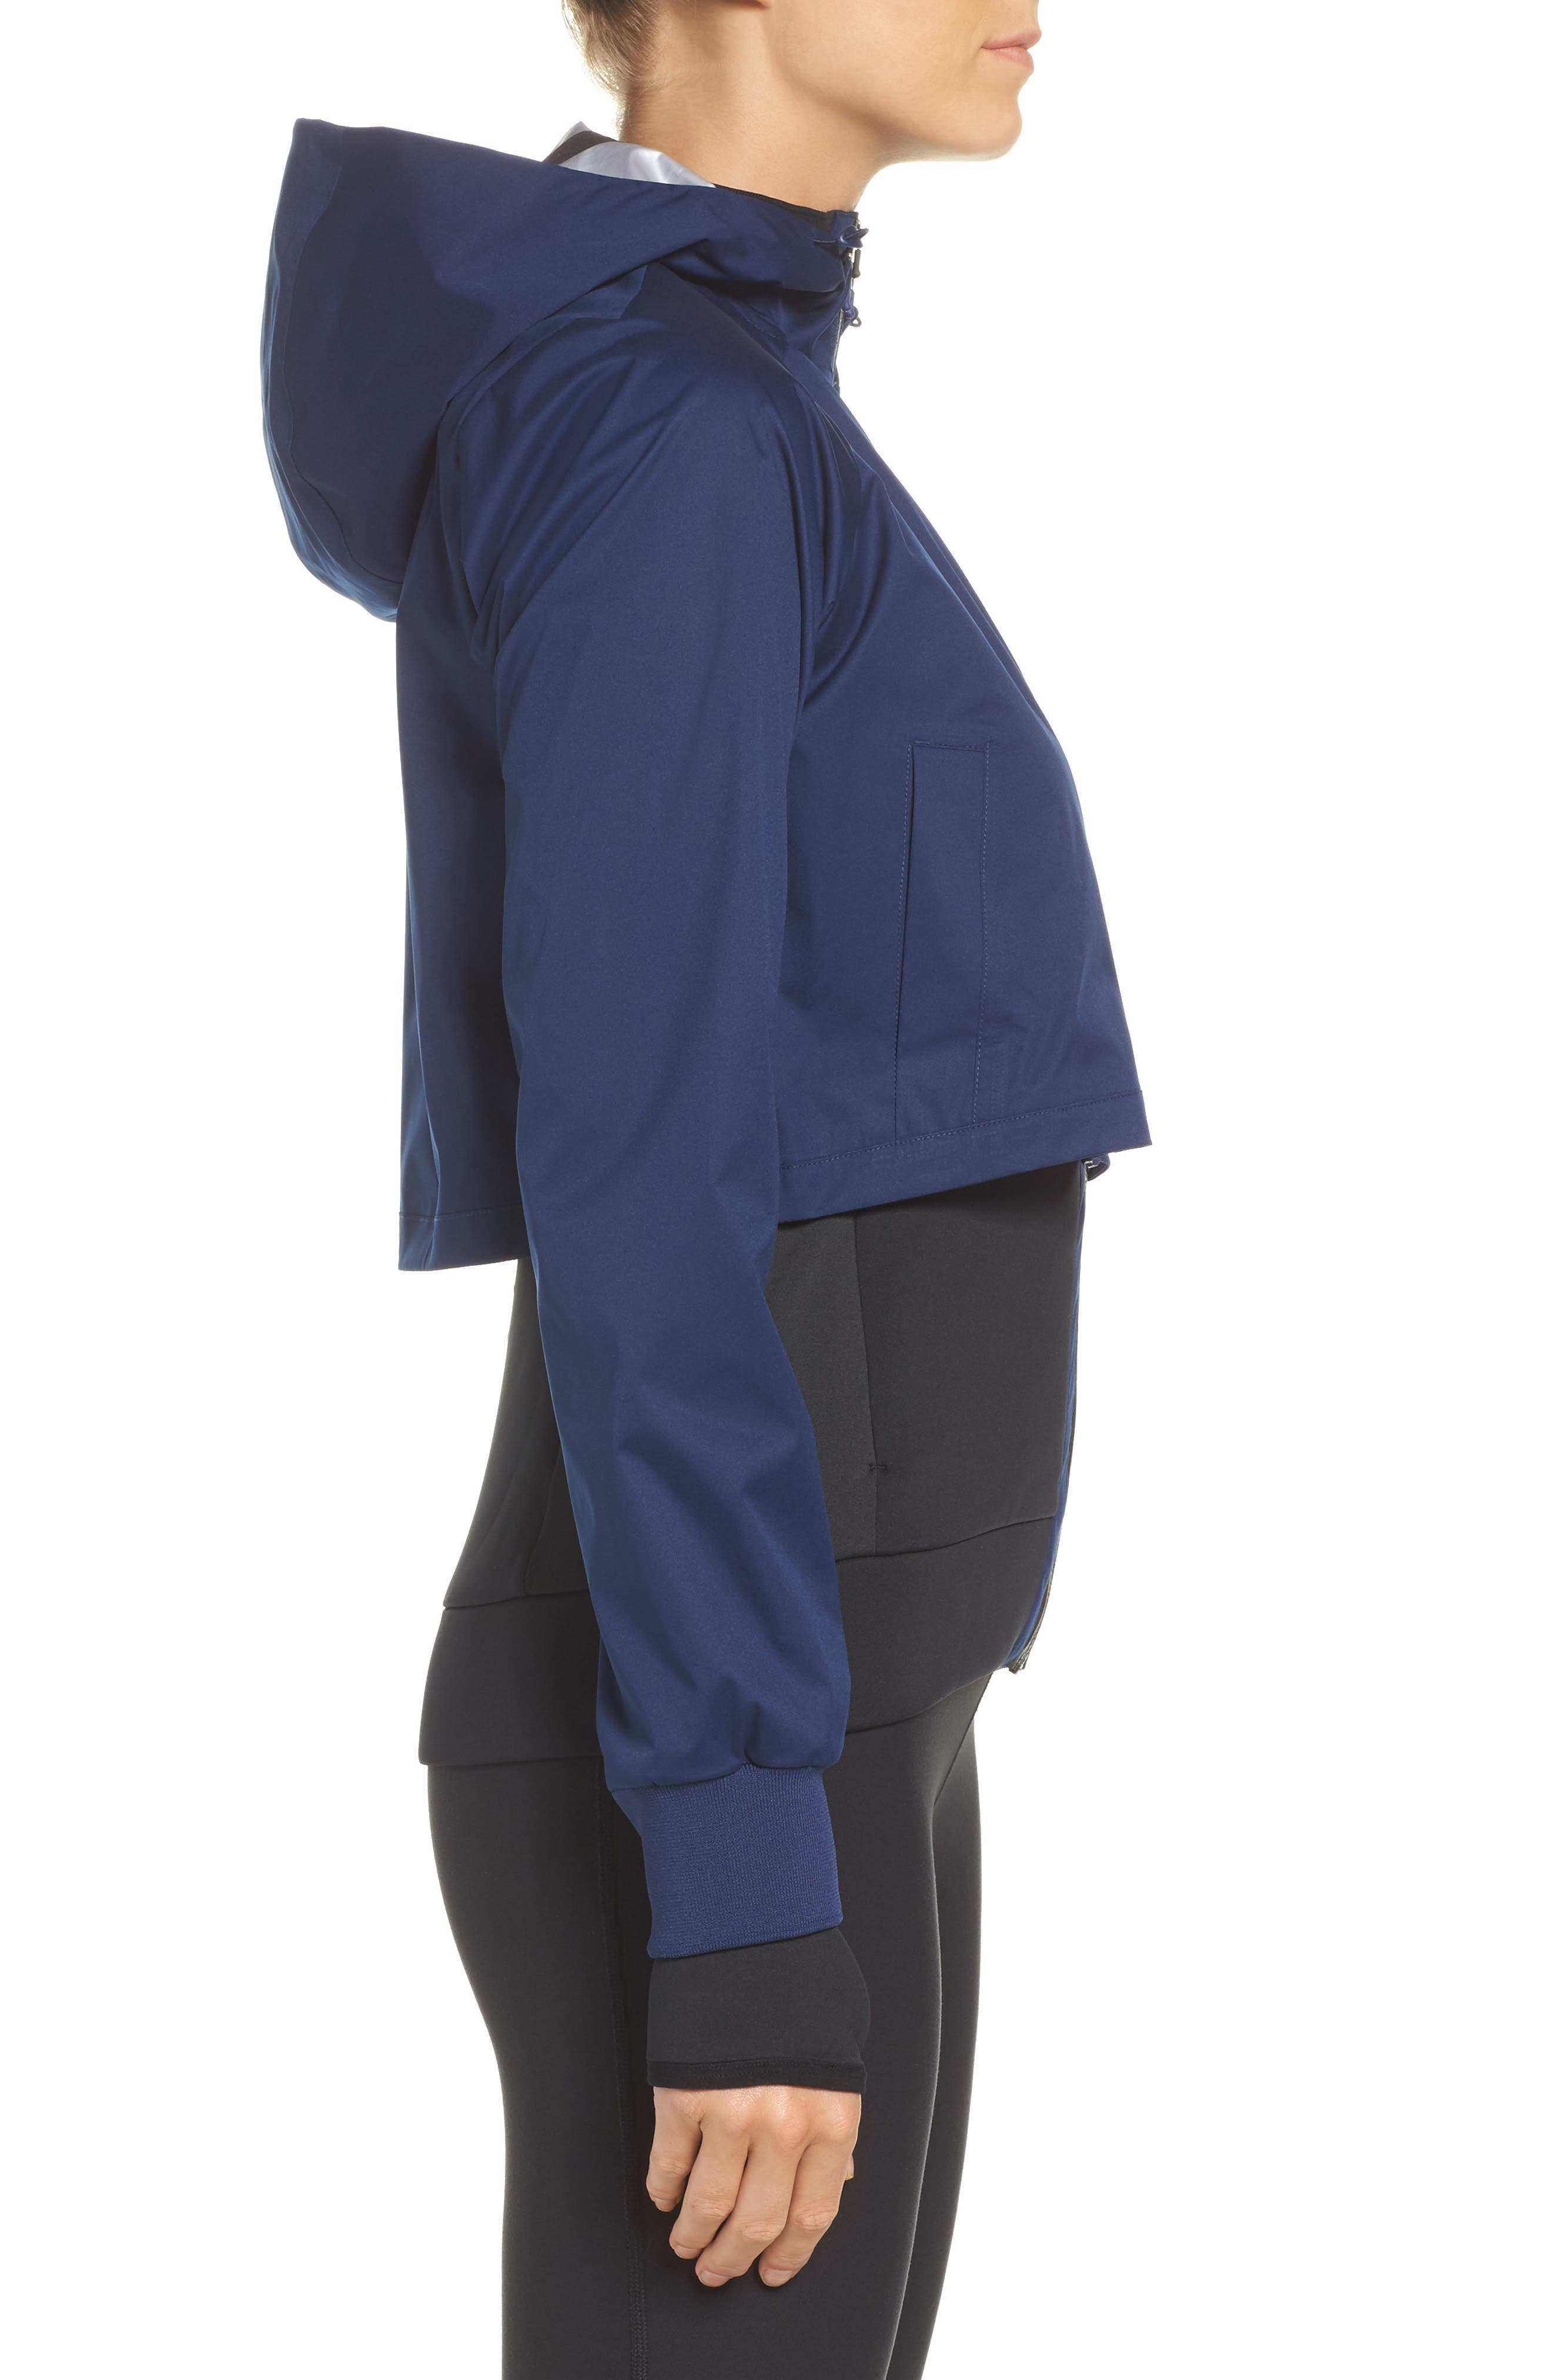 Therma Shield 2-in-1 Training Jacket,                             Alternate thumbnail 4, color,                             Binary Blue/ Black/ White